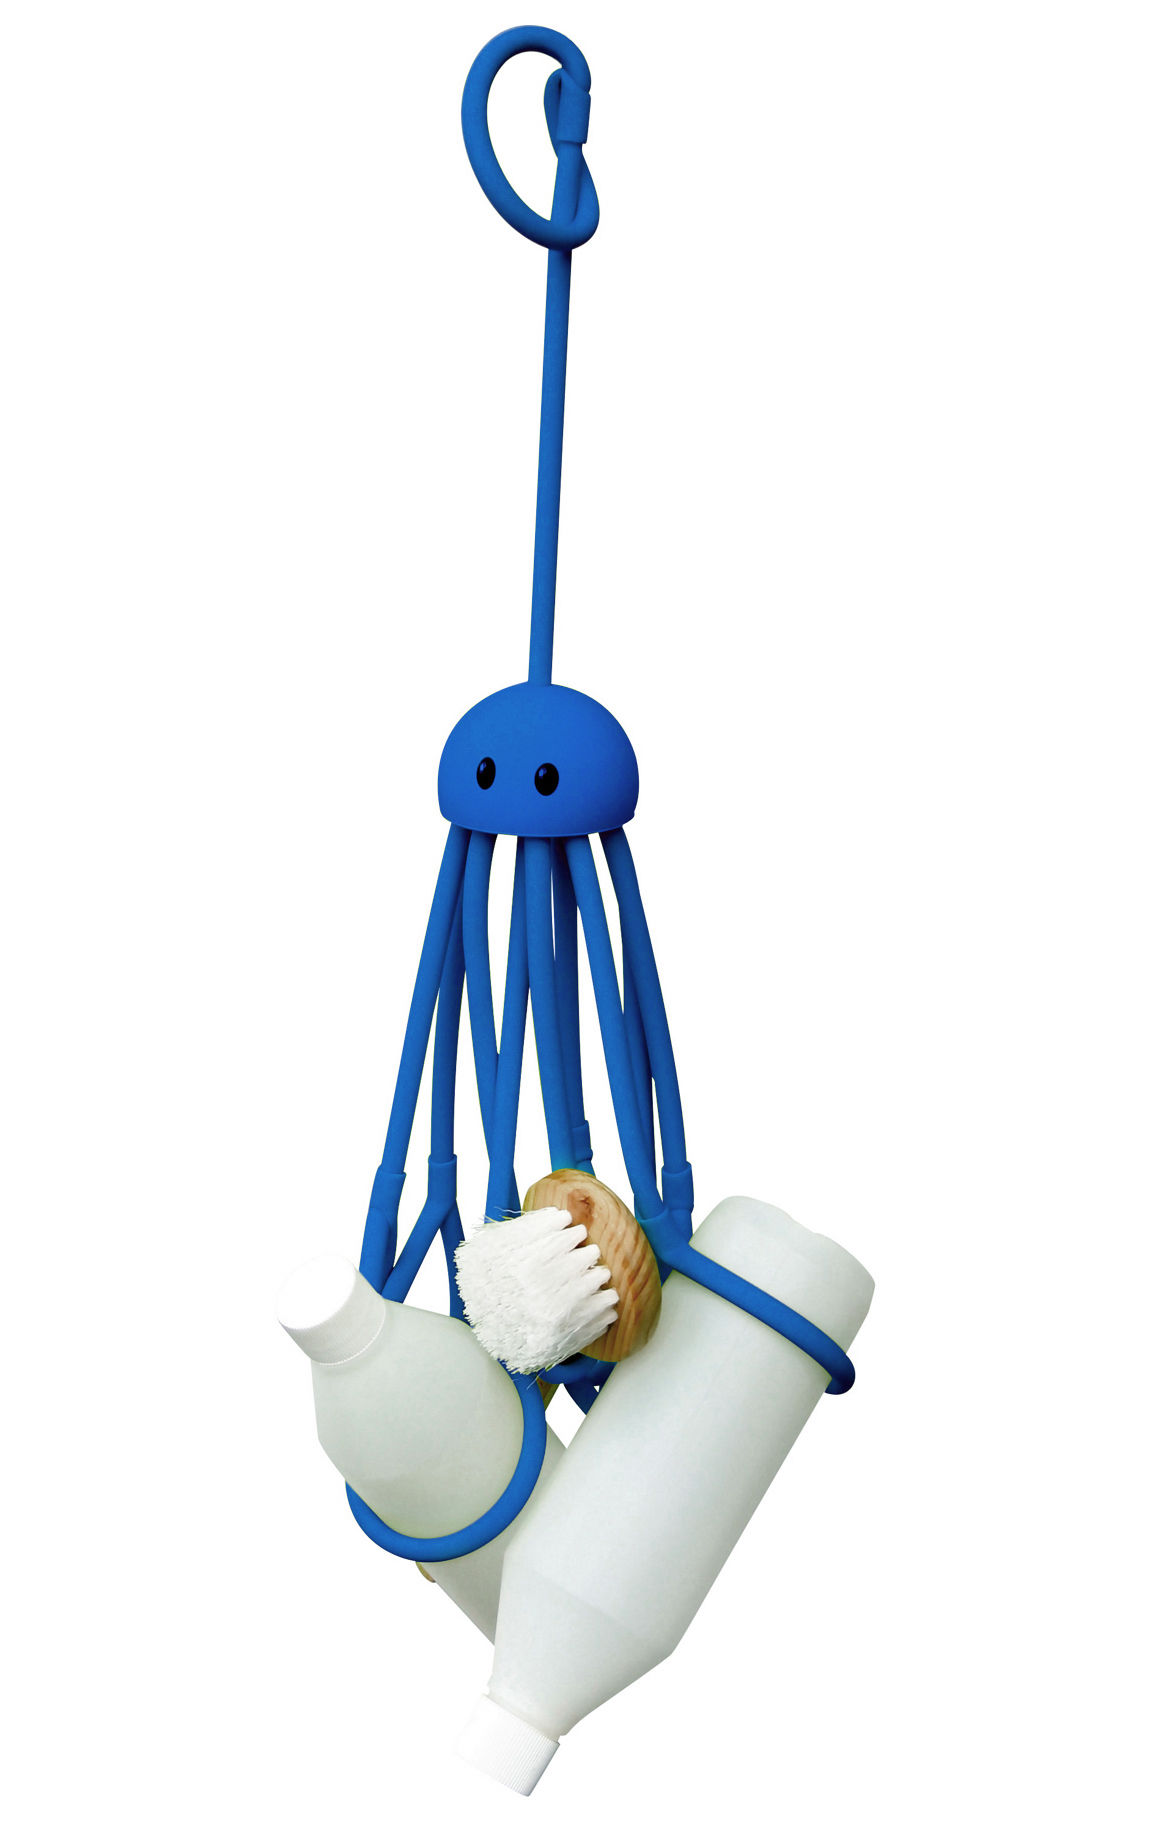 Octopus Object organiser - Shower octopus Blue by Pa Design